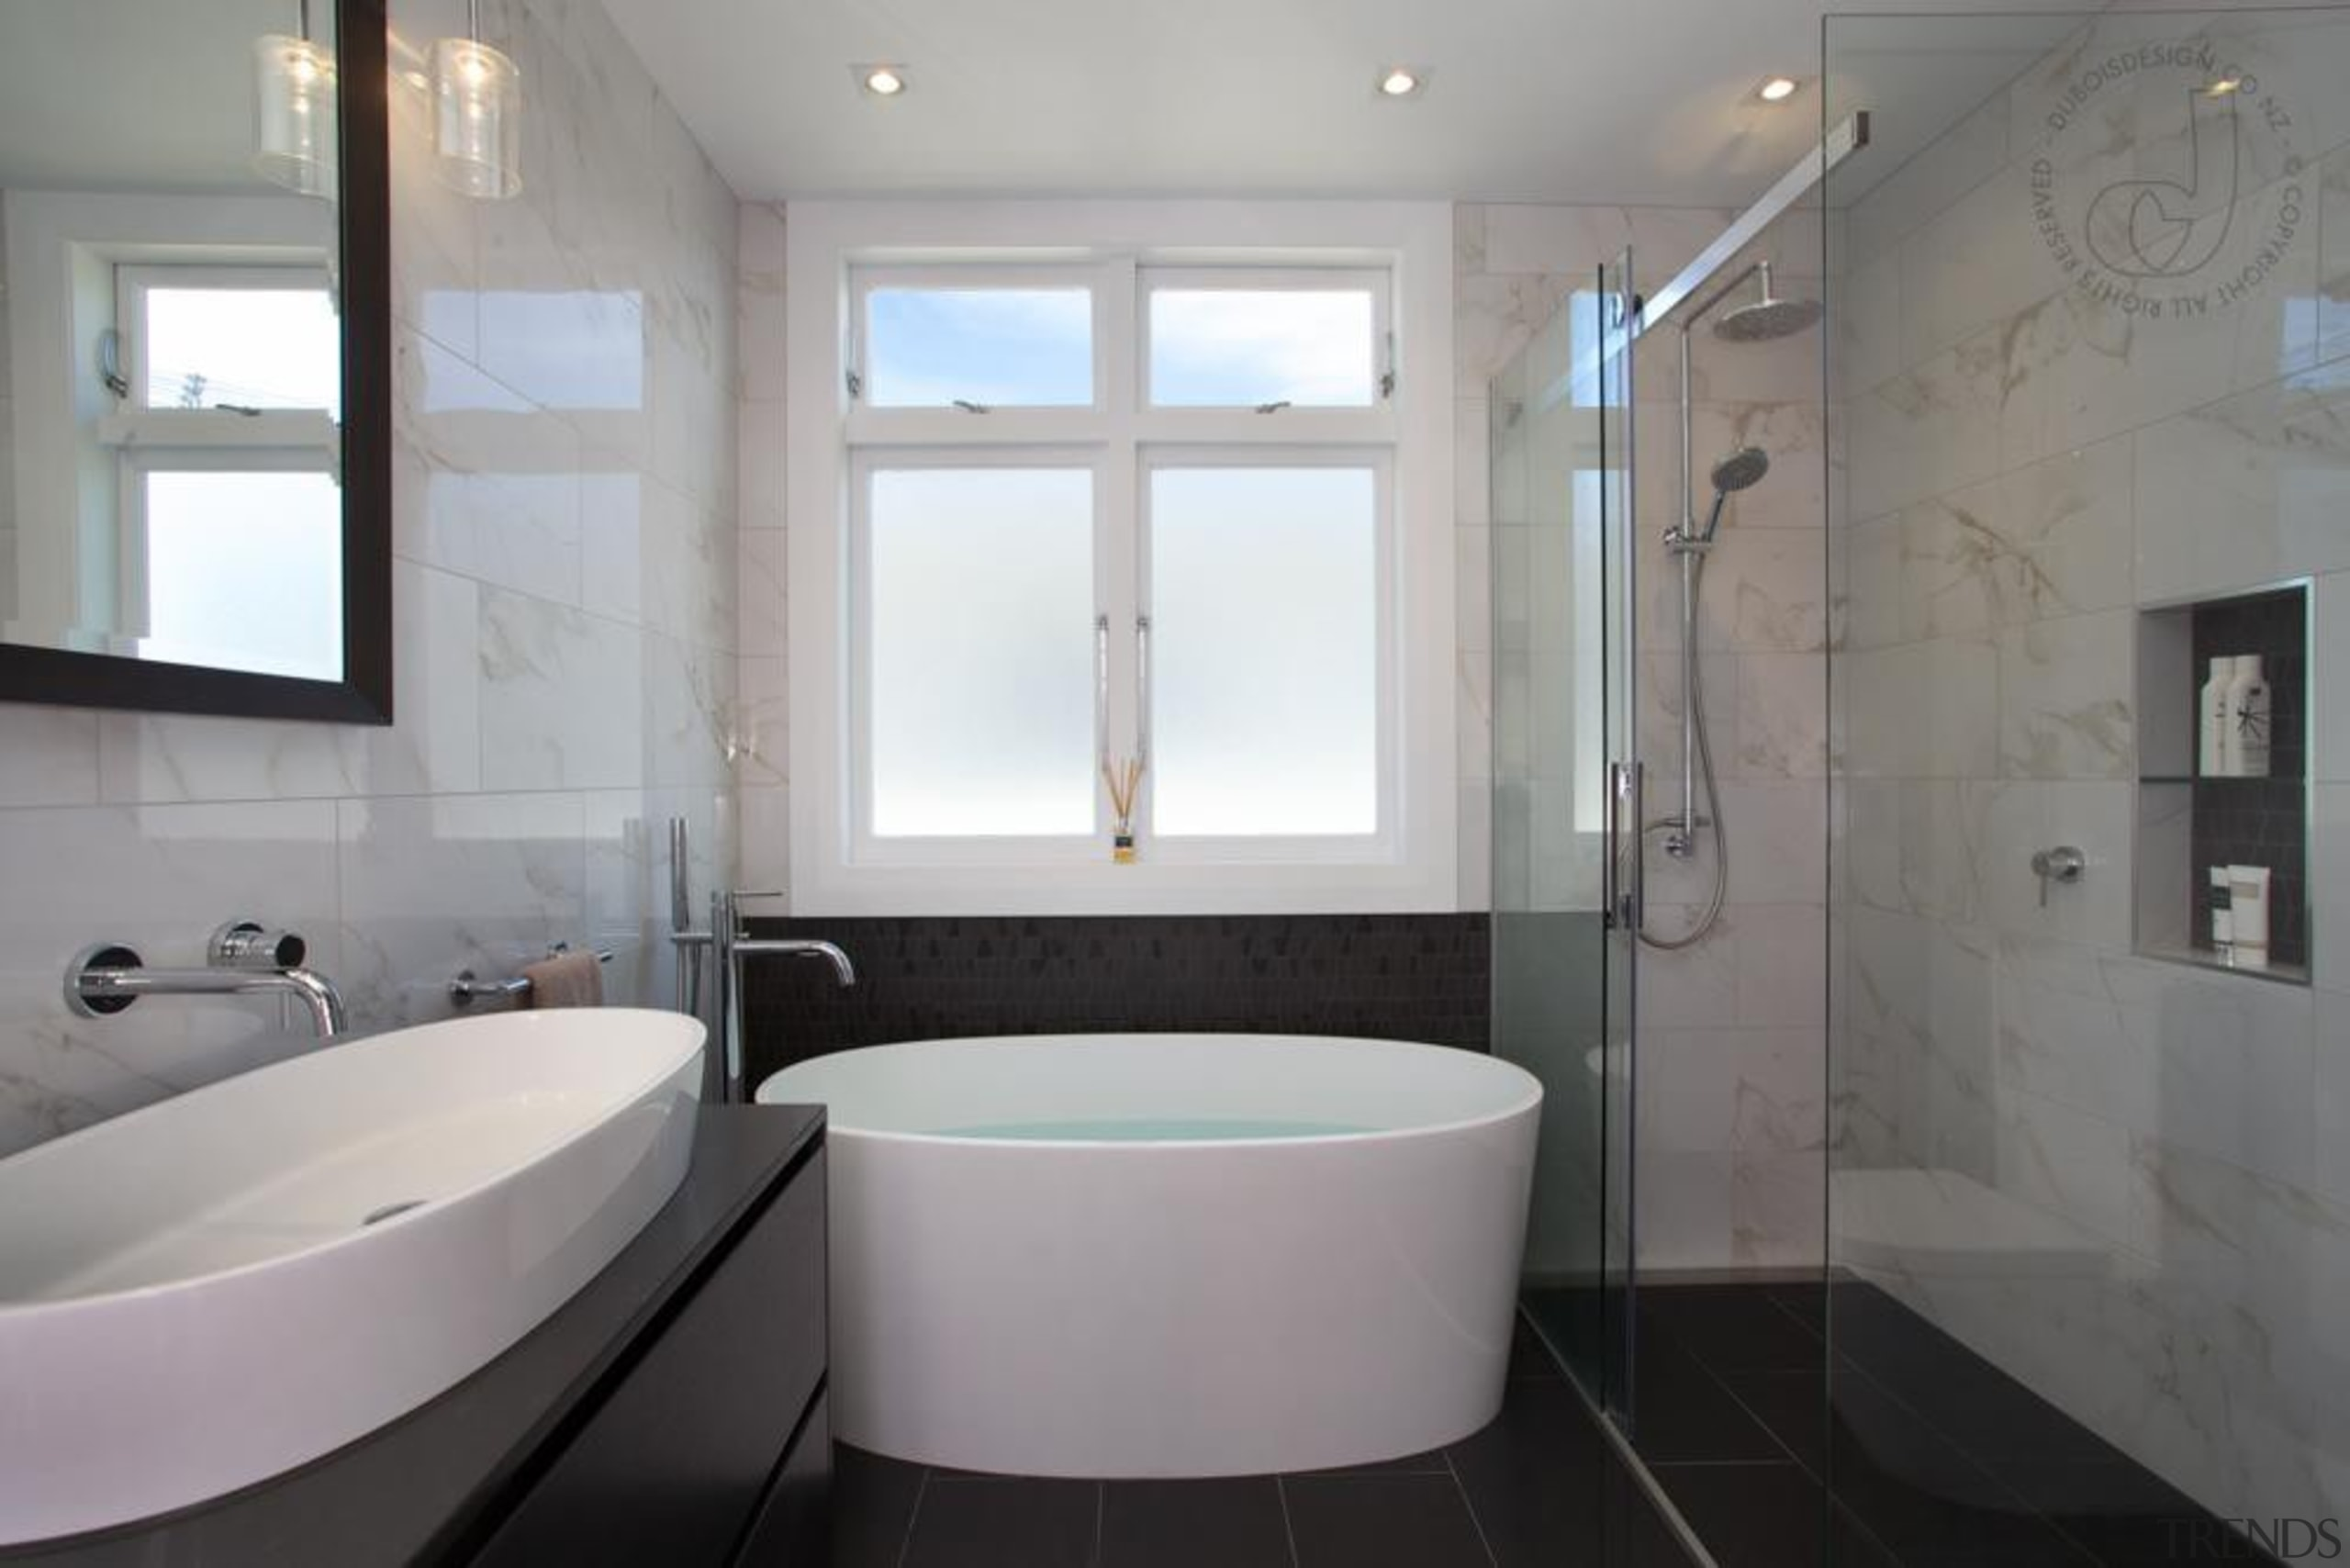 Stylish Bathroom - Stylish Bathroom - architecture | architecture, bathroom, home, interior design, property, room, window, gray